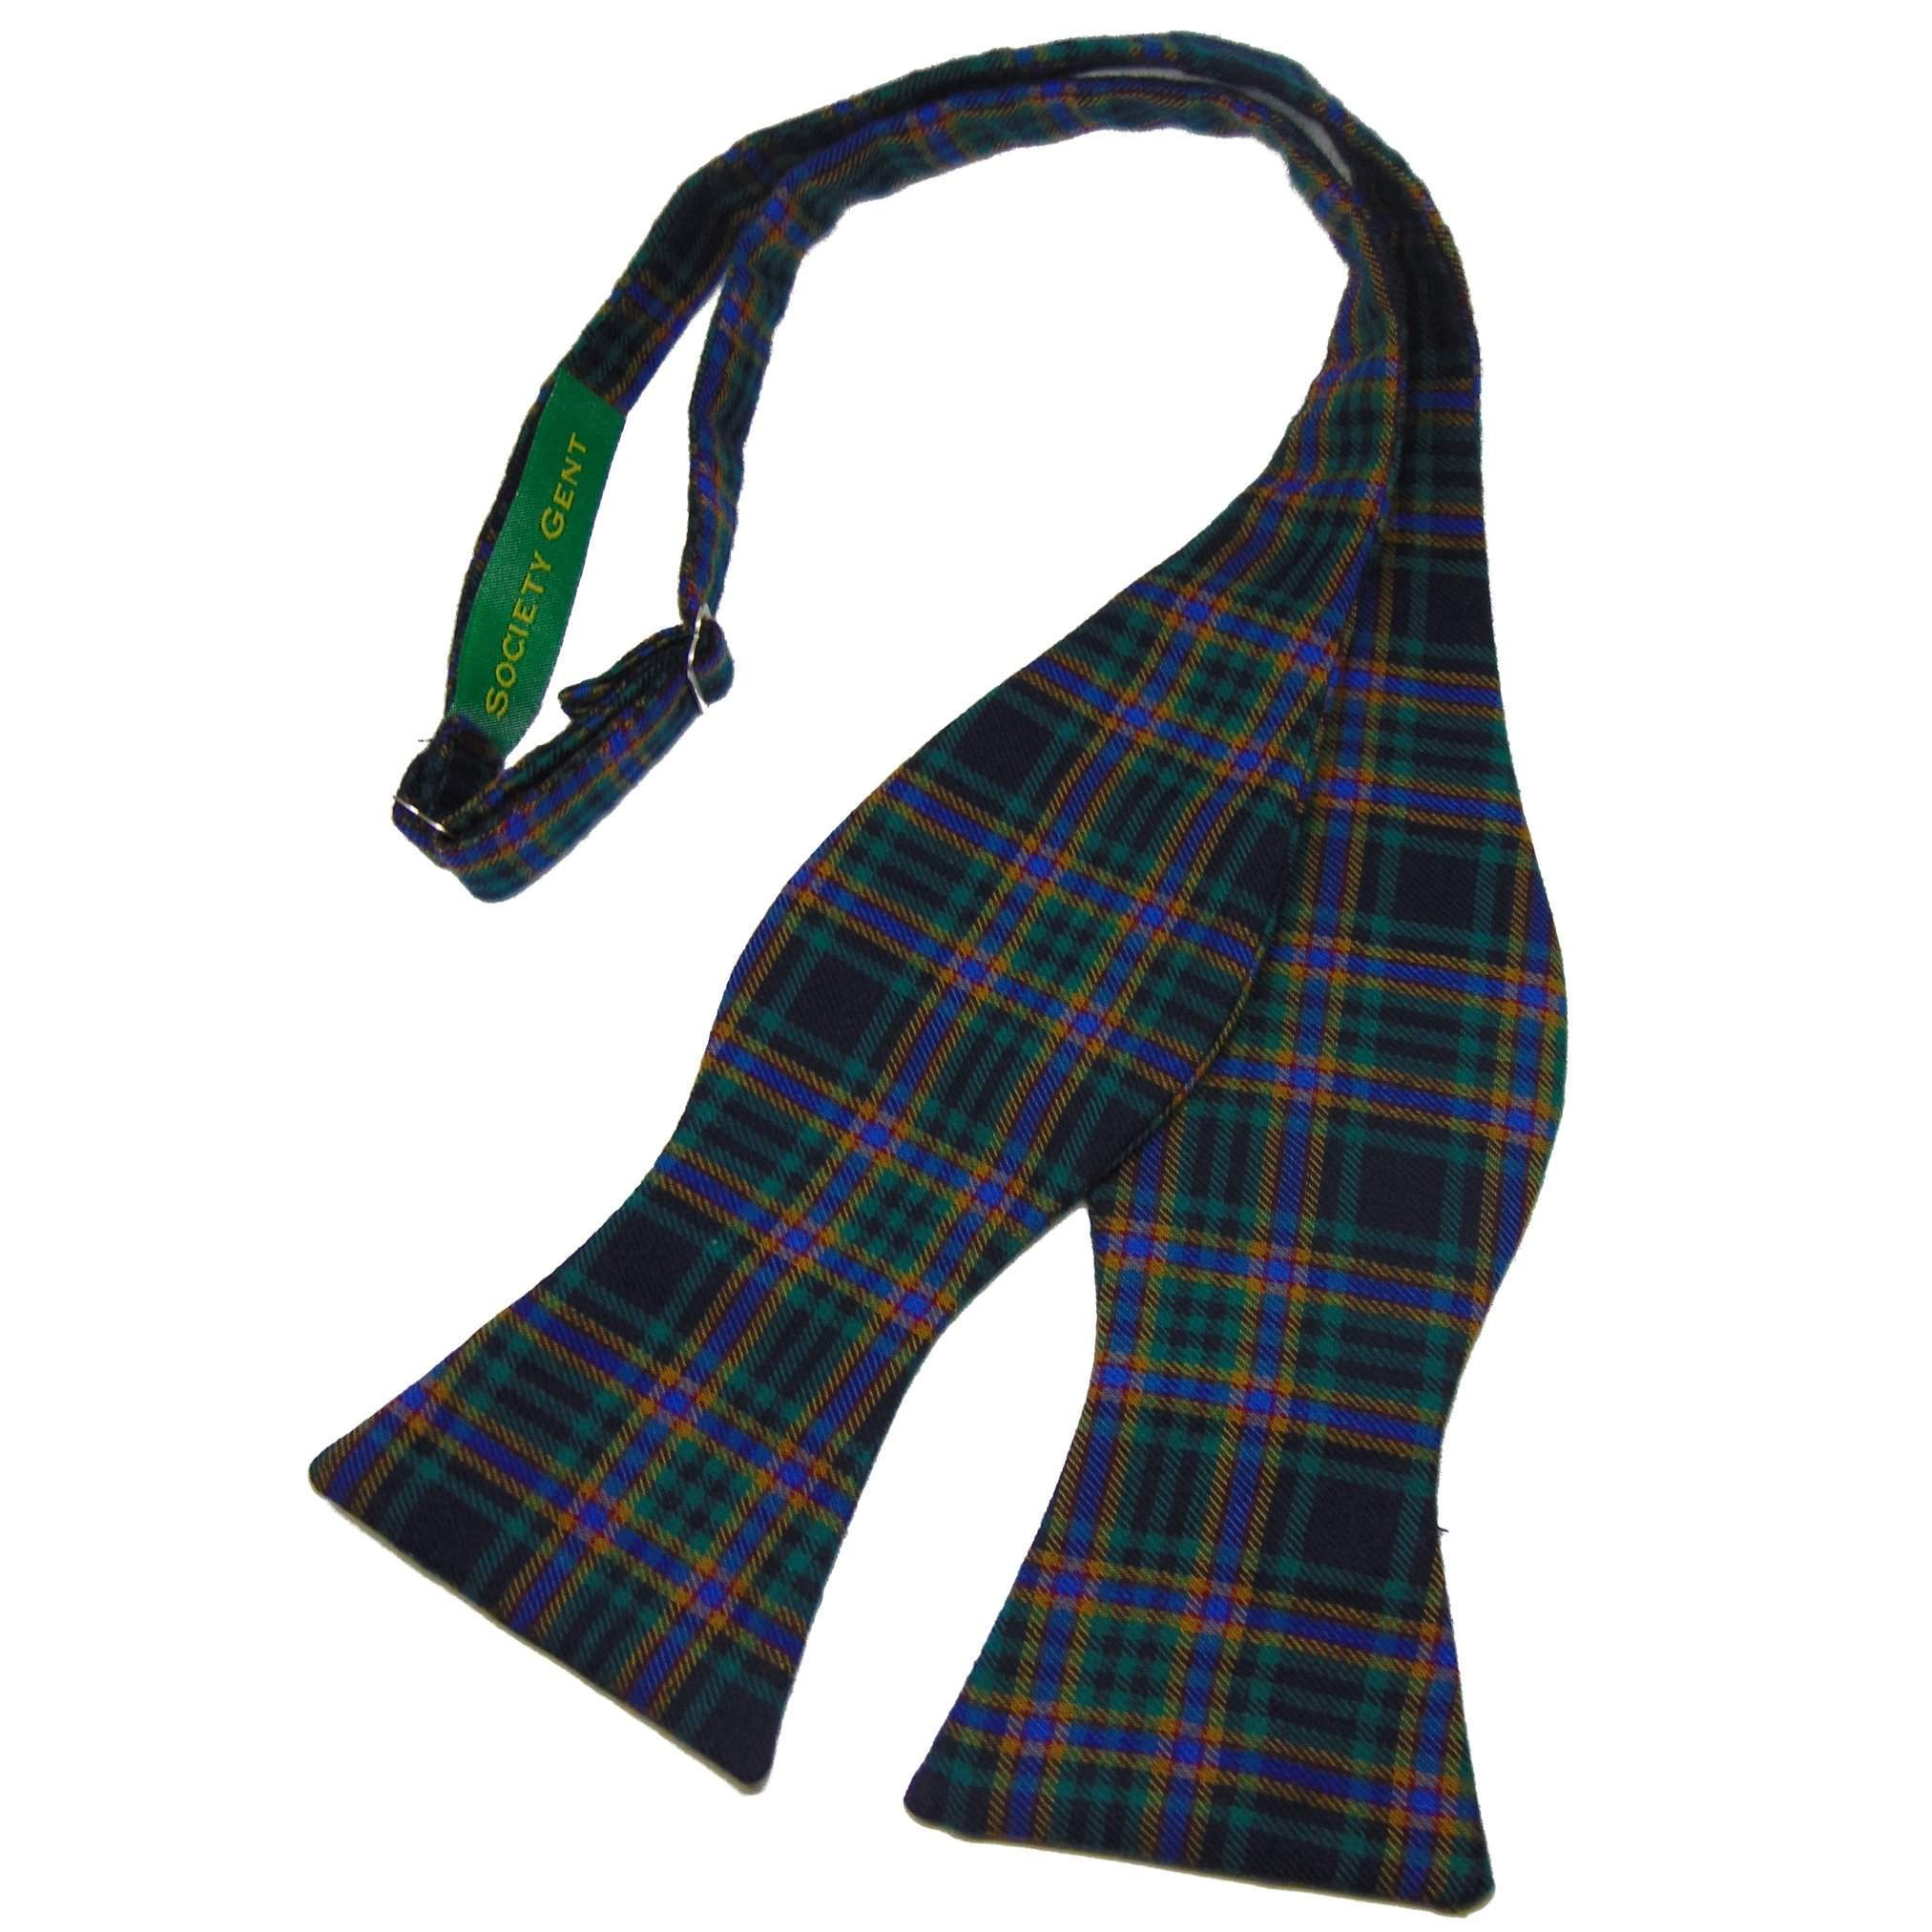 Green and yellow tartan self tie bow tie green and yellow tartan self tie bow tie and matching pocket square bow ties ccuart Image collections